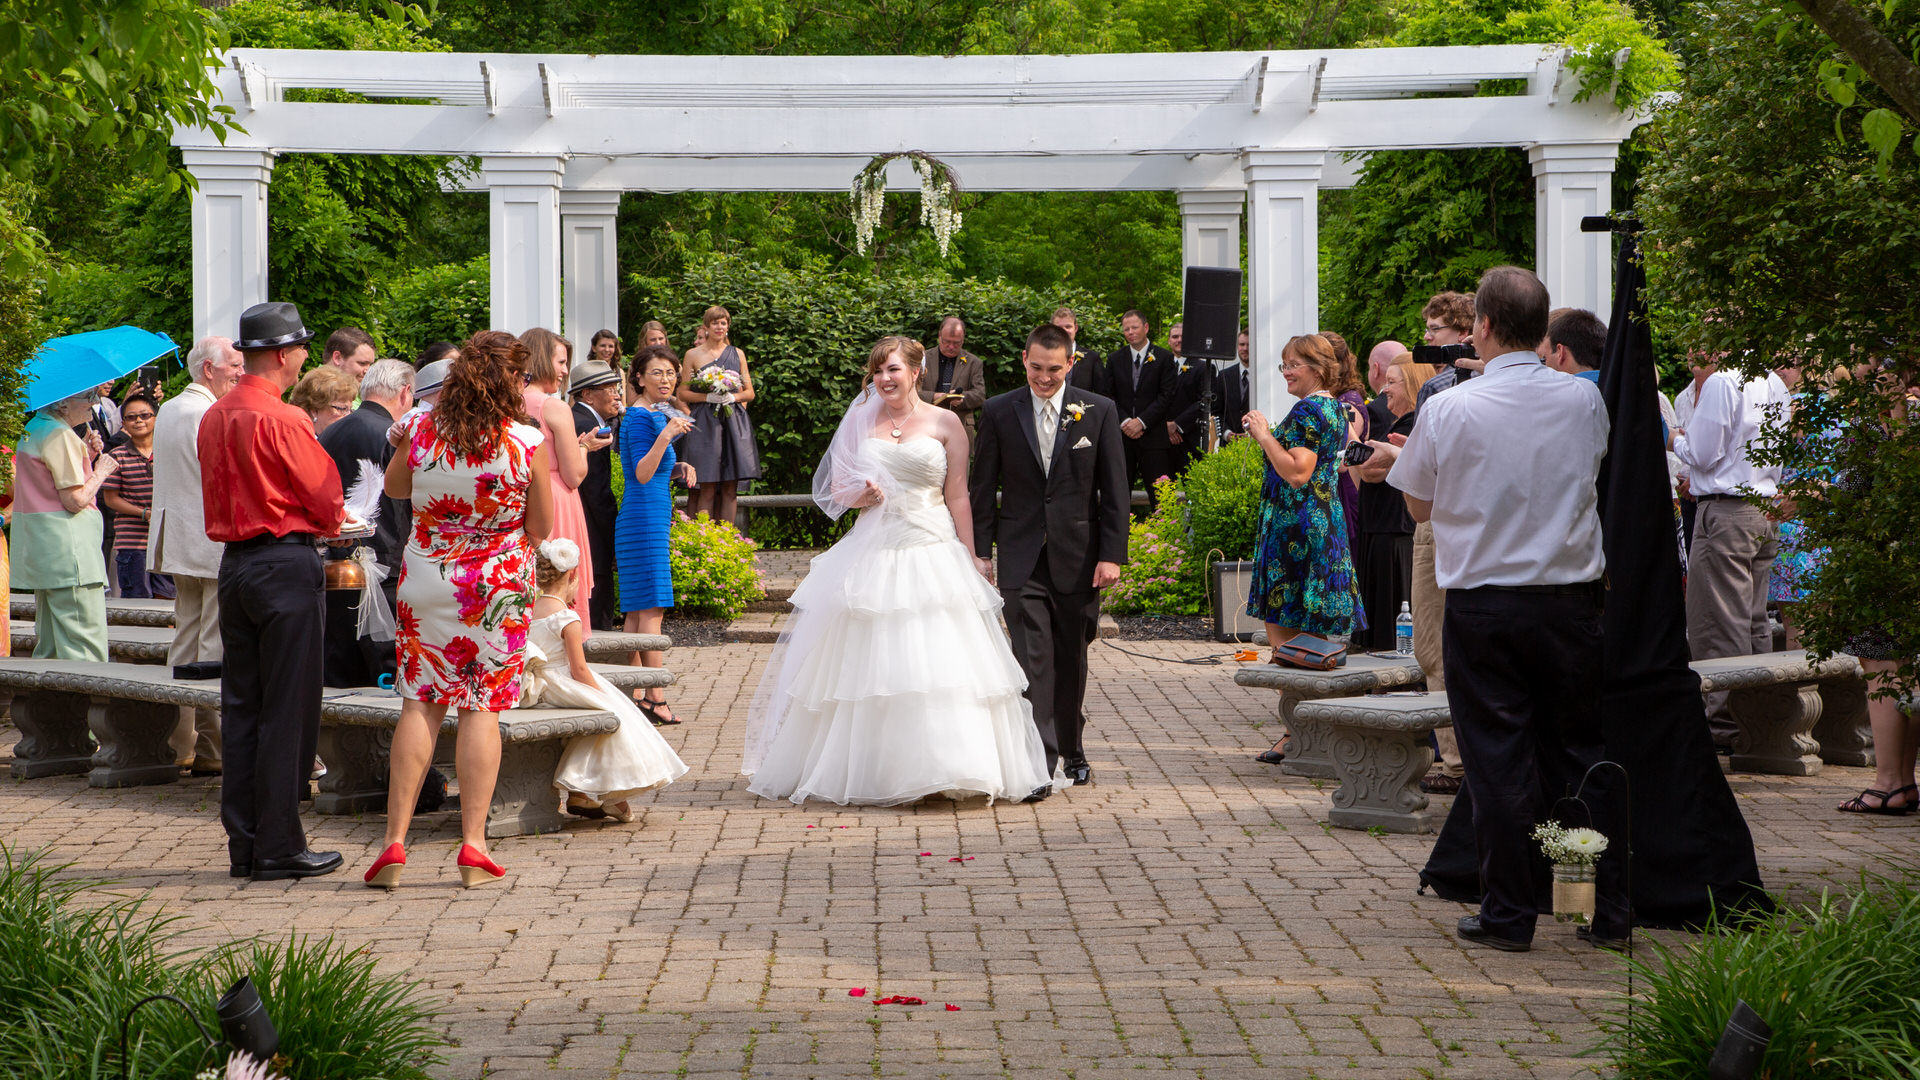 Joie & Joe's Wedding at the Weller's Carriage House